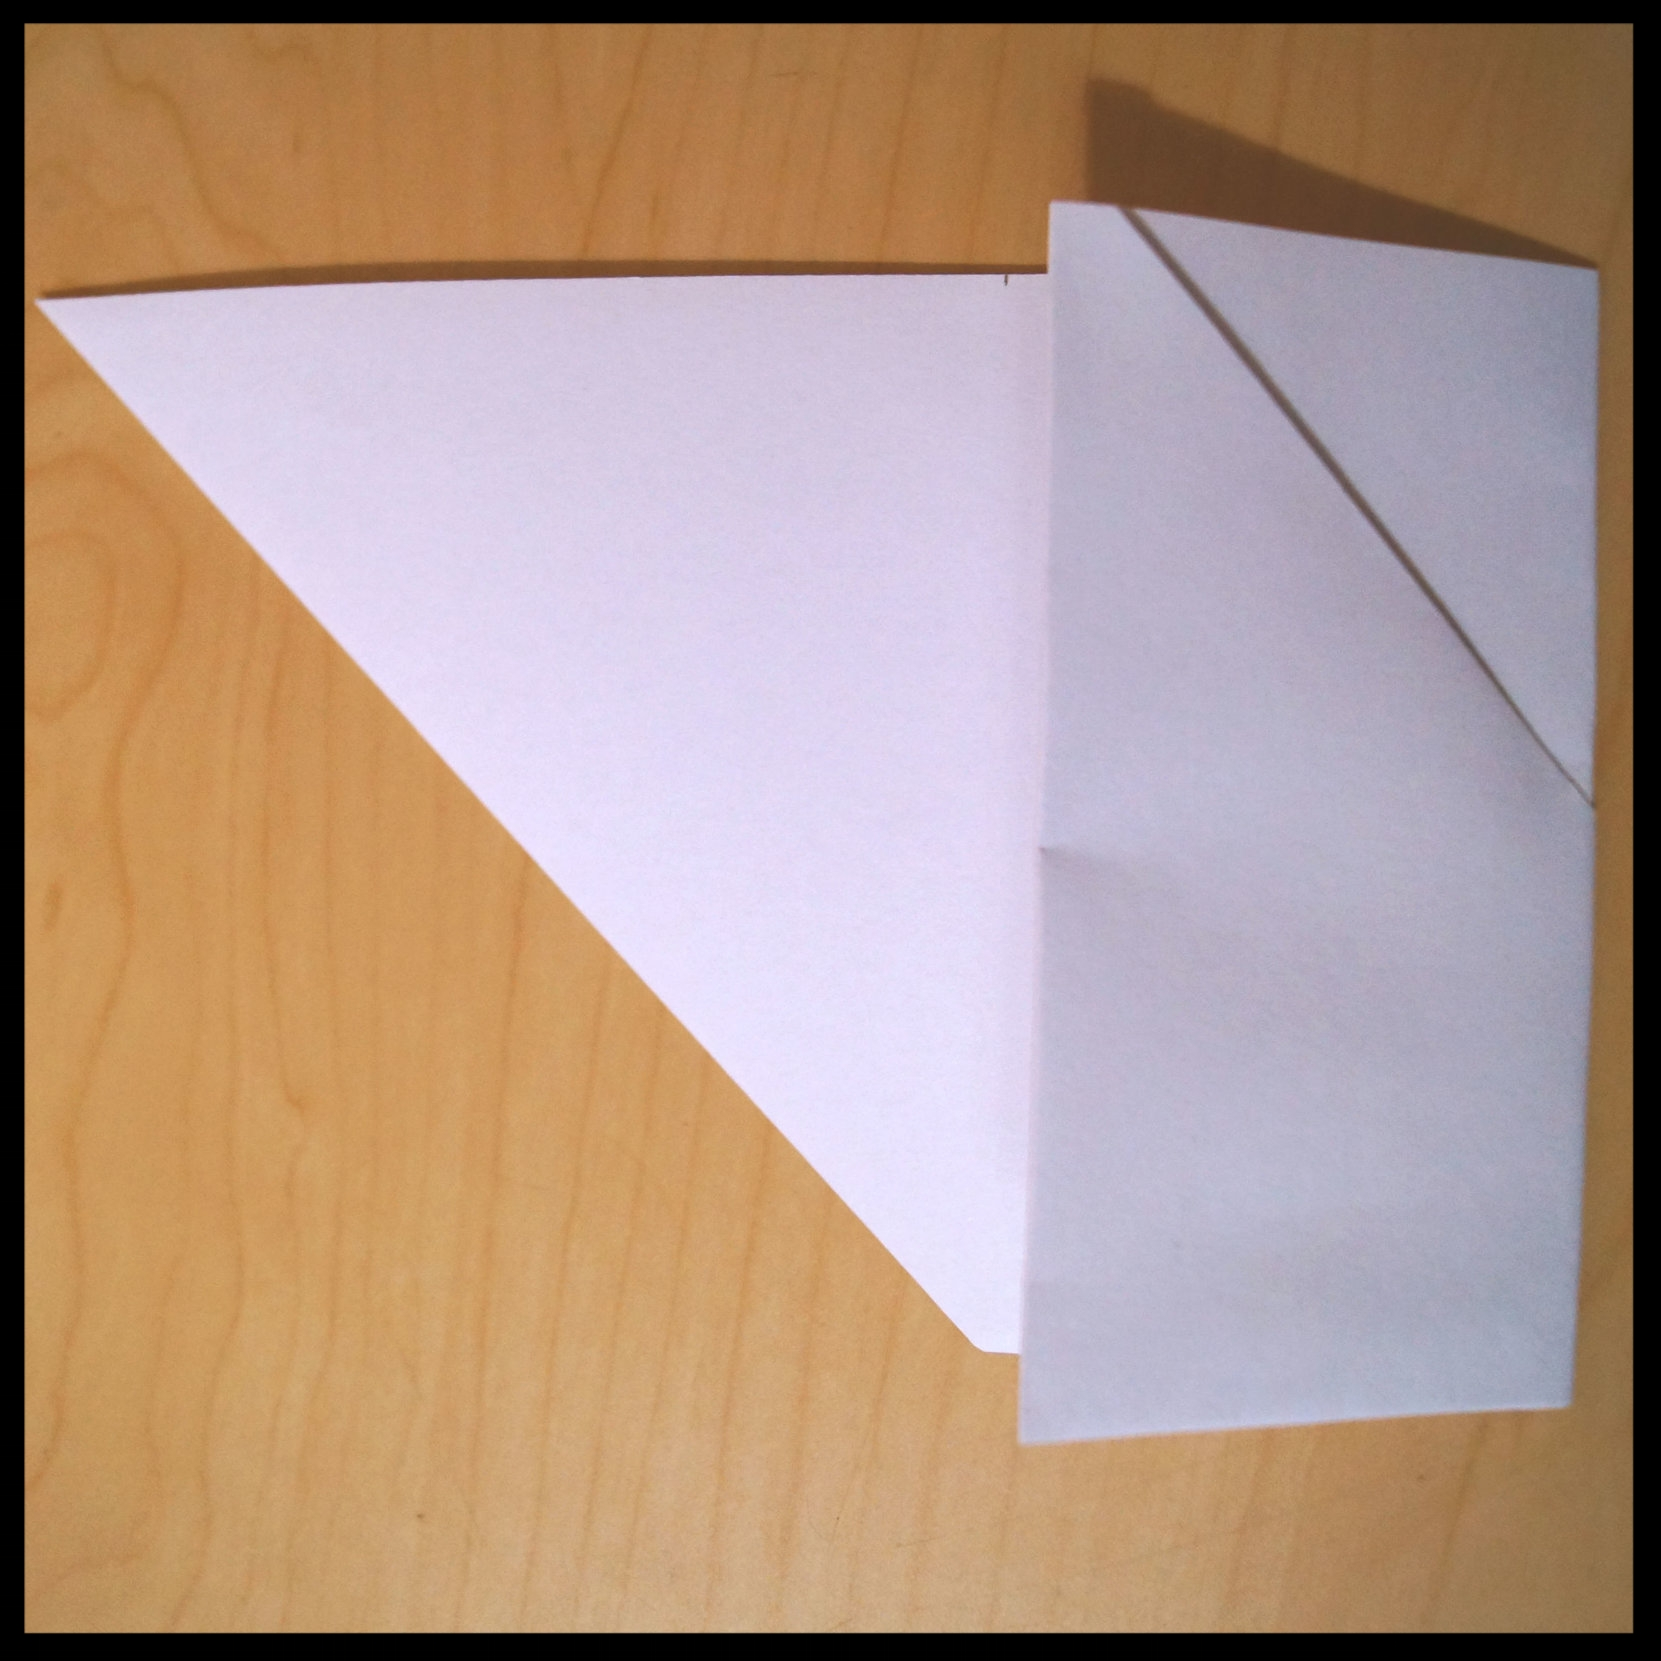 5.       Repeat so the entire rectangular part is folded.